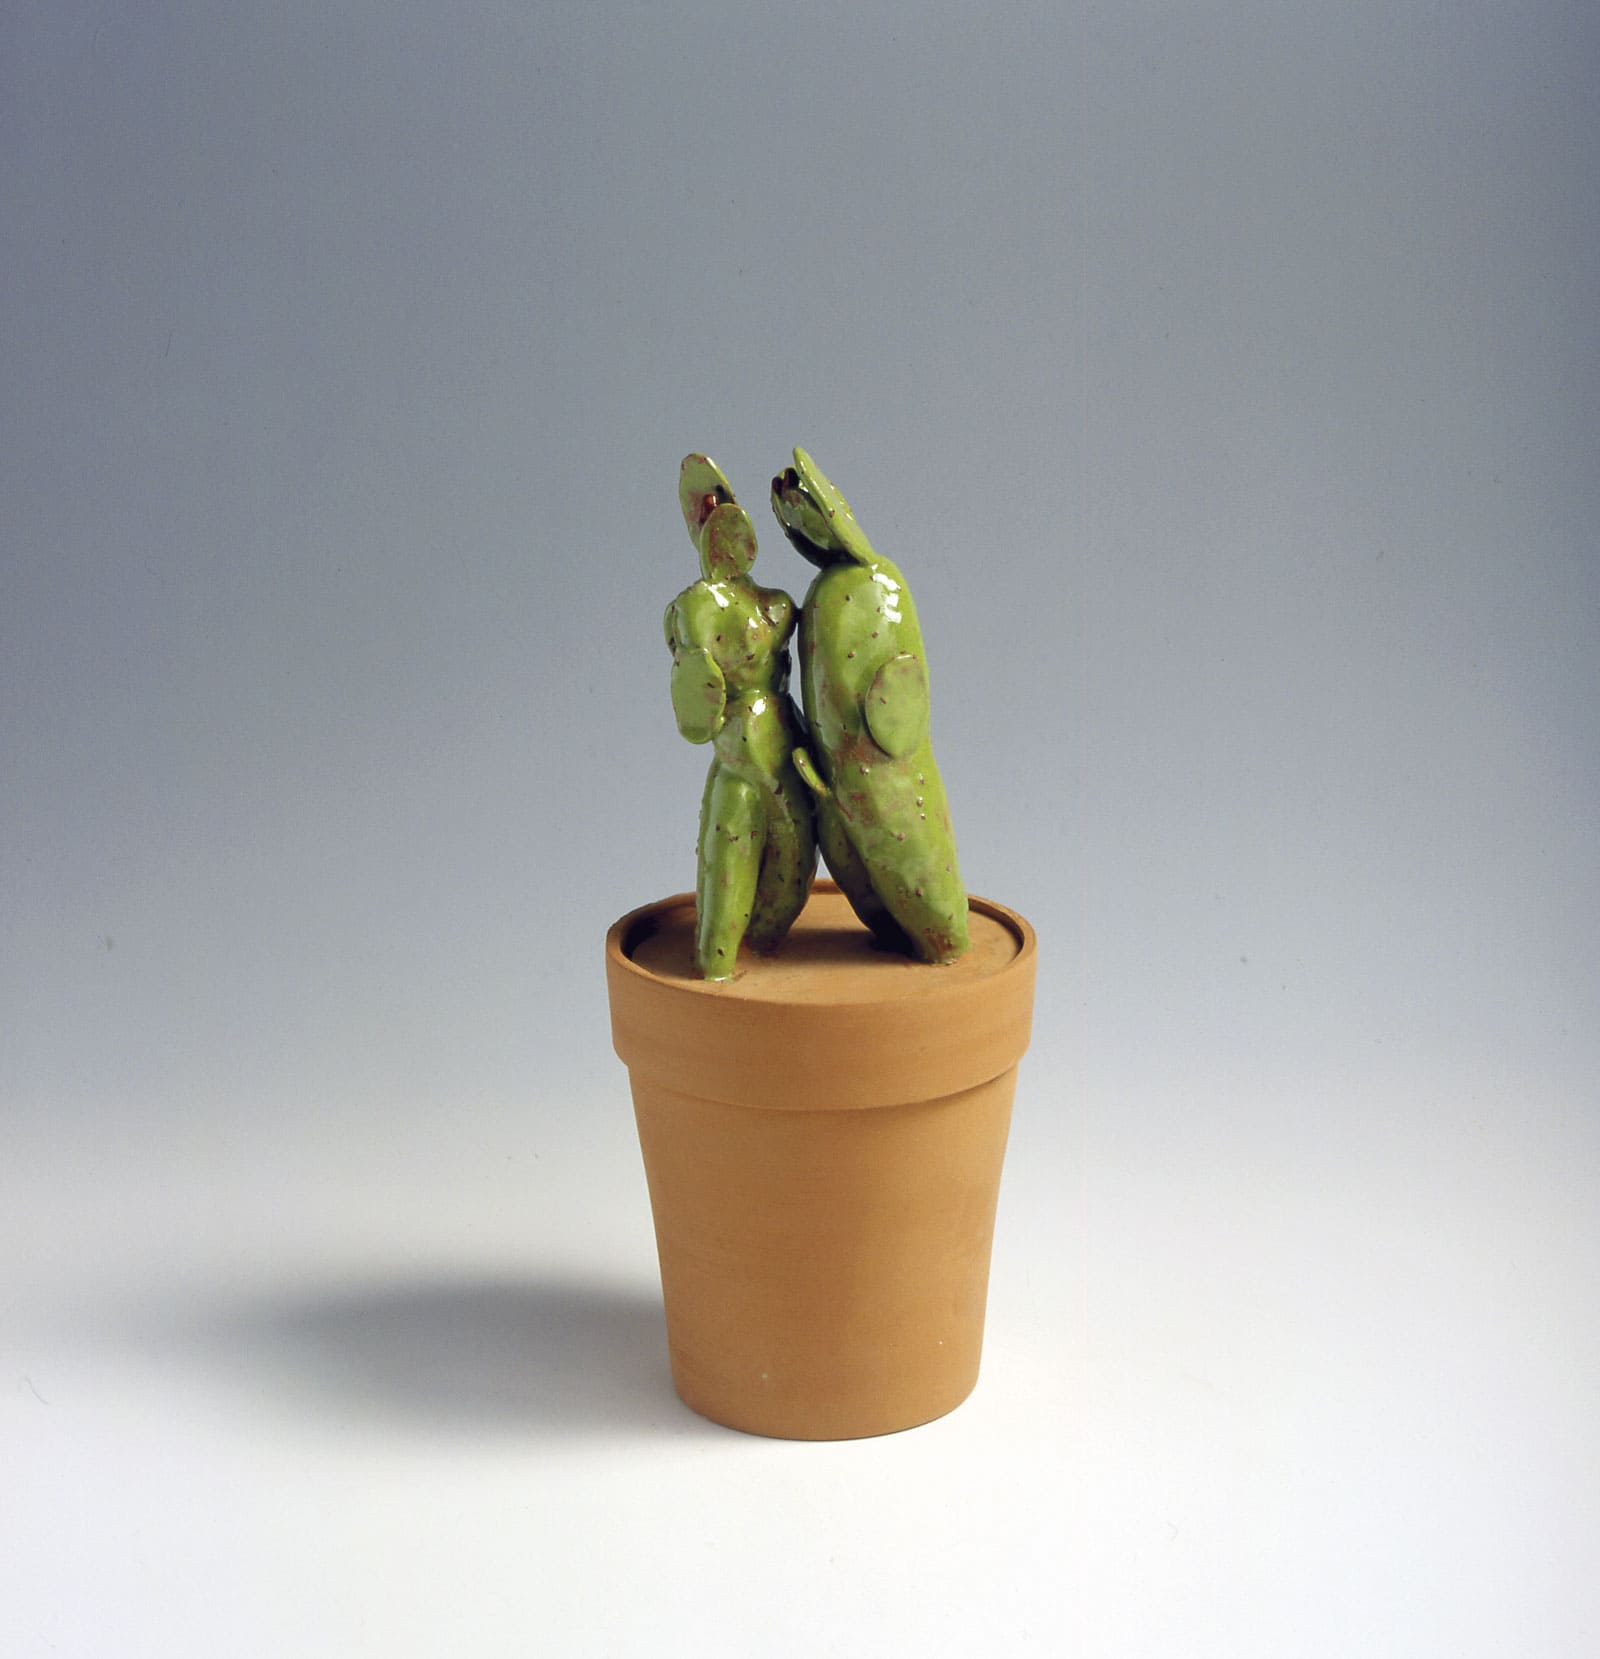 brown ceramic pot with a ceramic green cactus planted inside